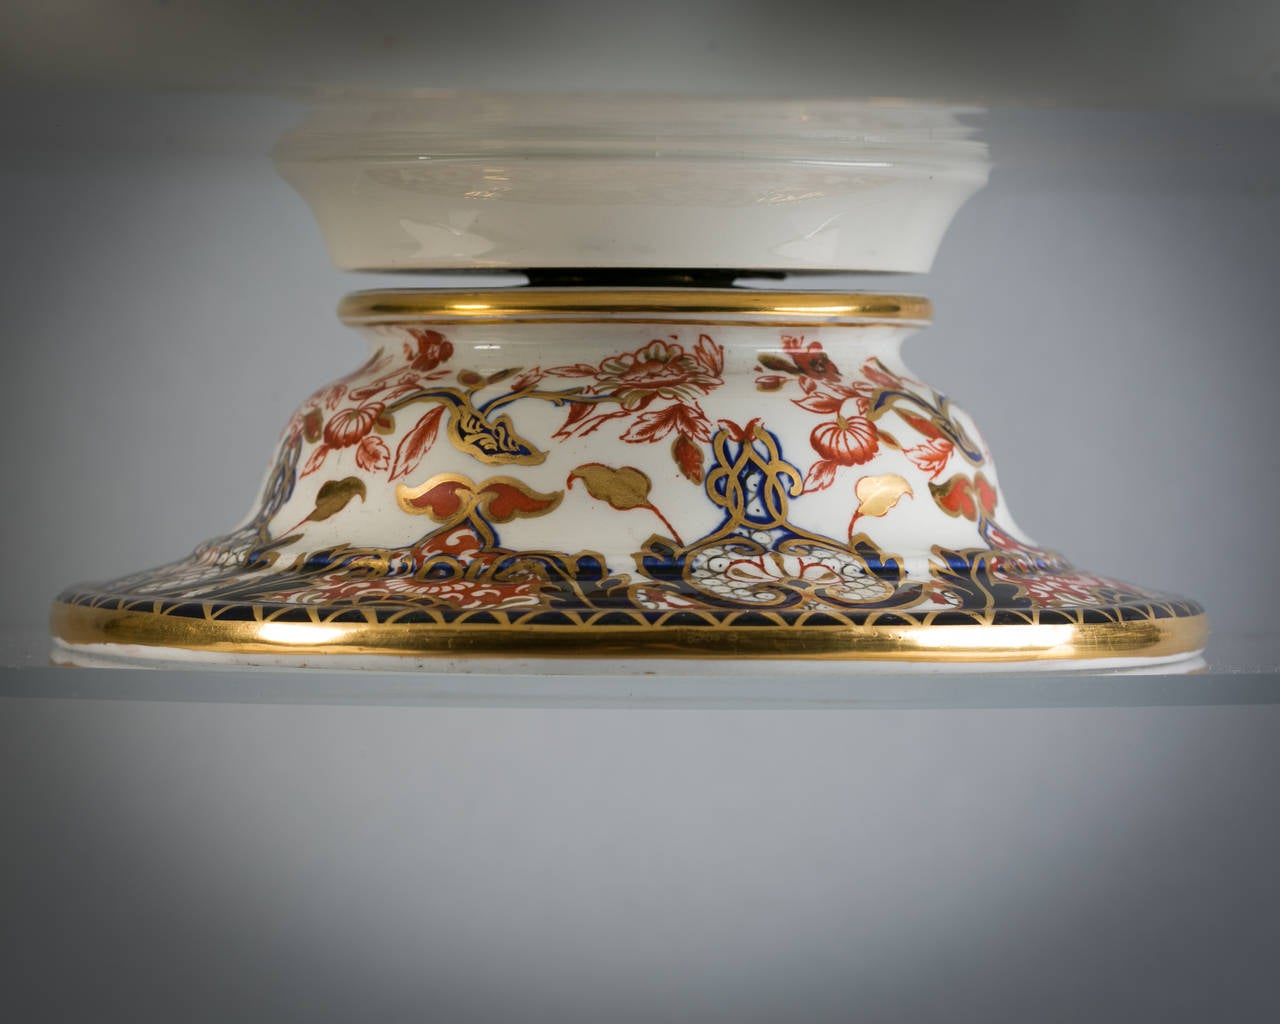 19th Century English Derby Crown Porcelain